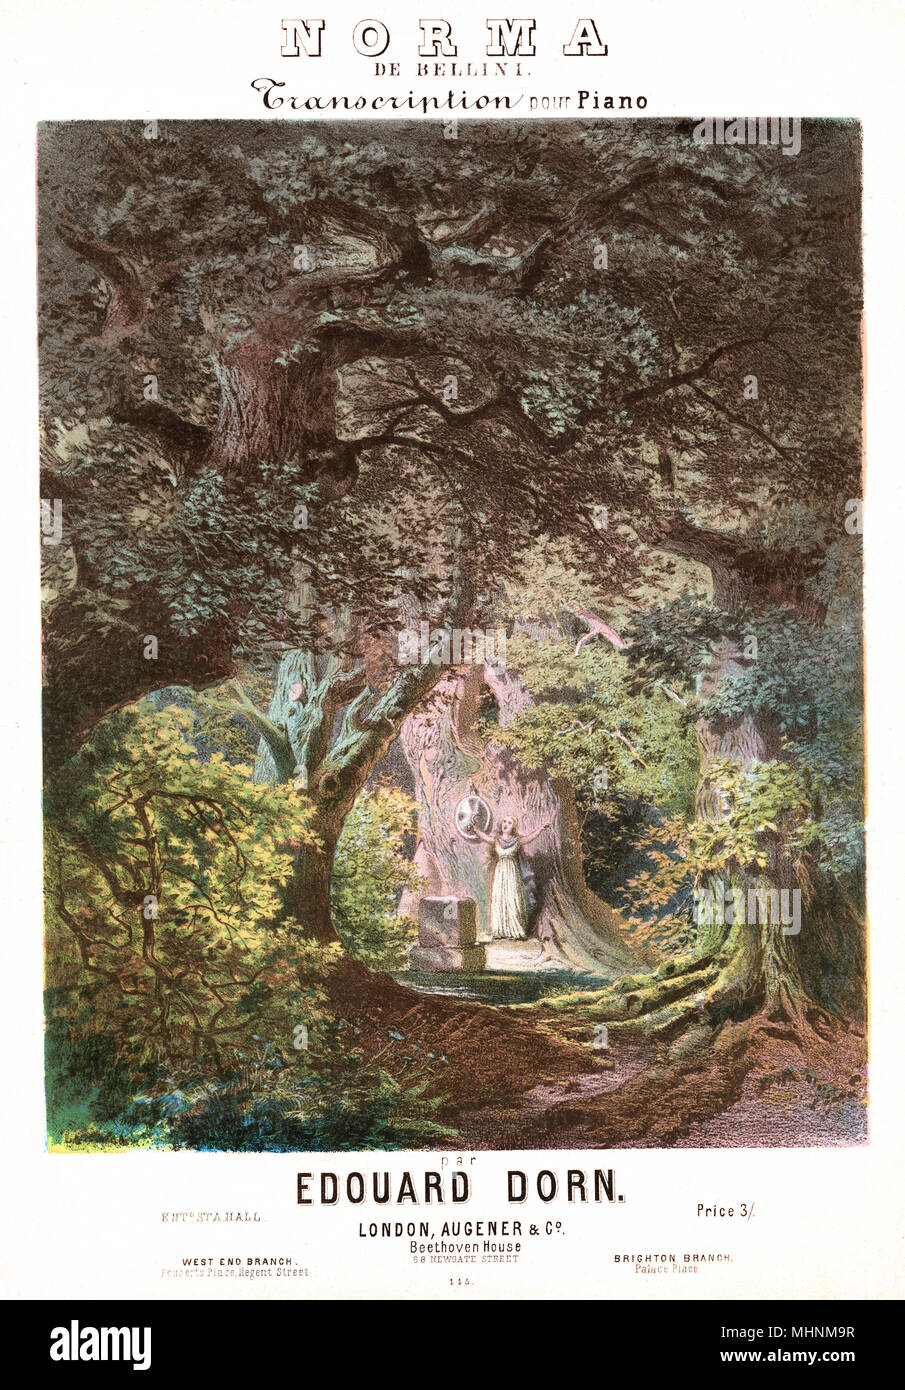 'Norma de Bellini' - Music Sheet Cover, Transcription for piano by Edouard Dorn. AN illustration of a singing woman in a forest.     Date: circa 1831 - Stock Image